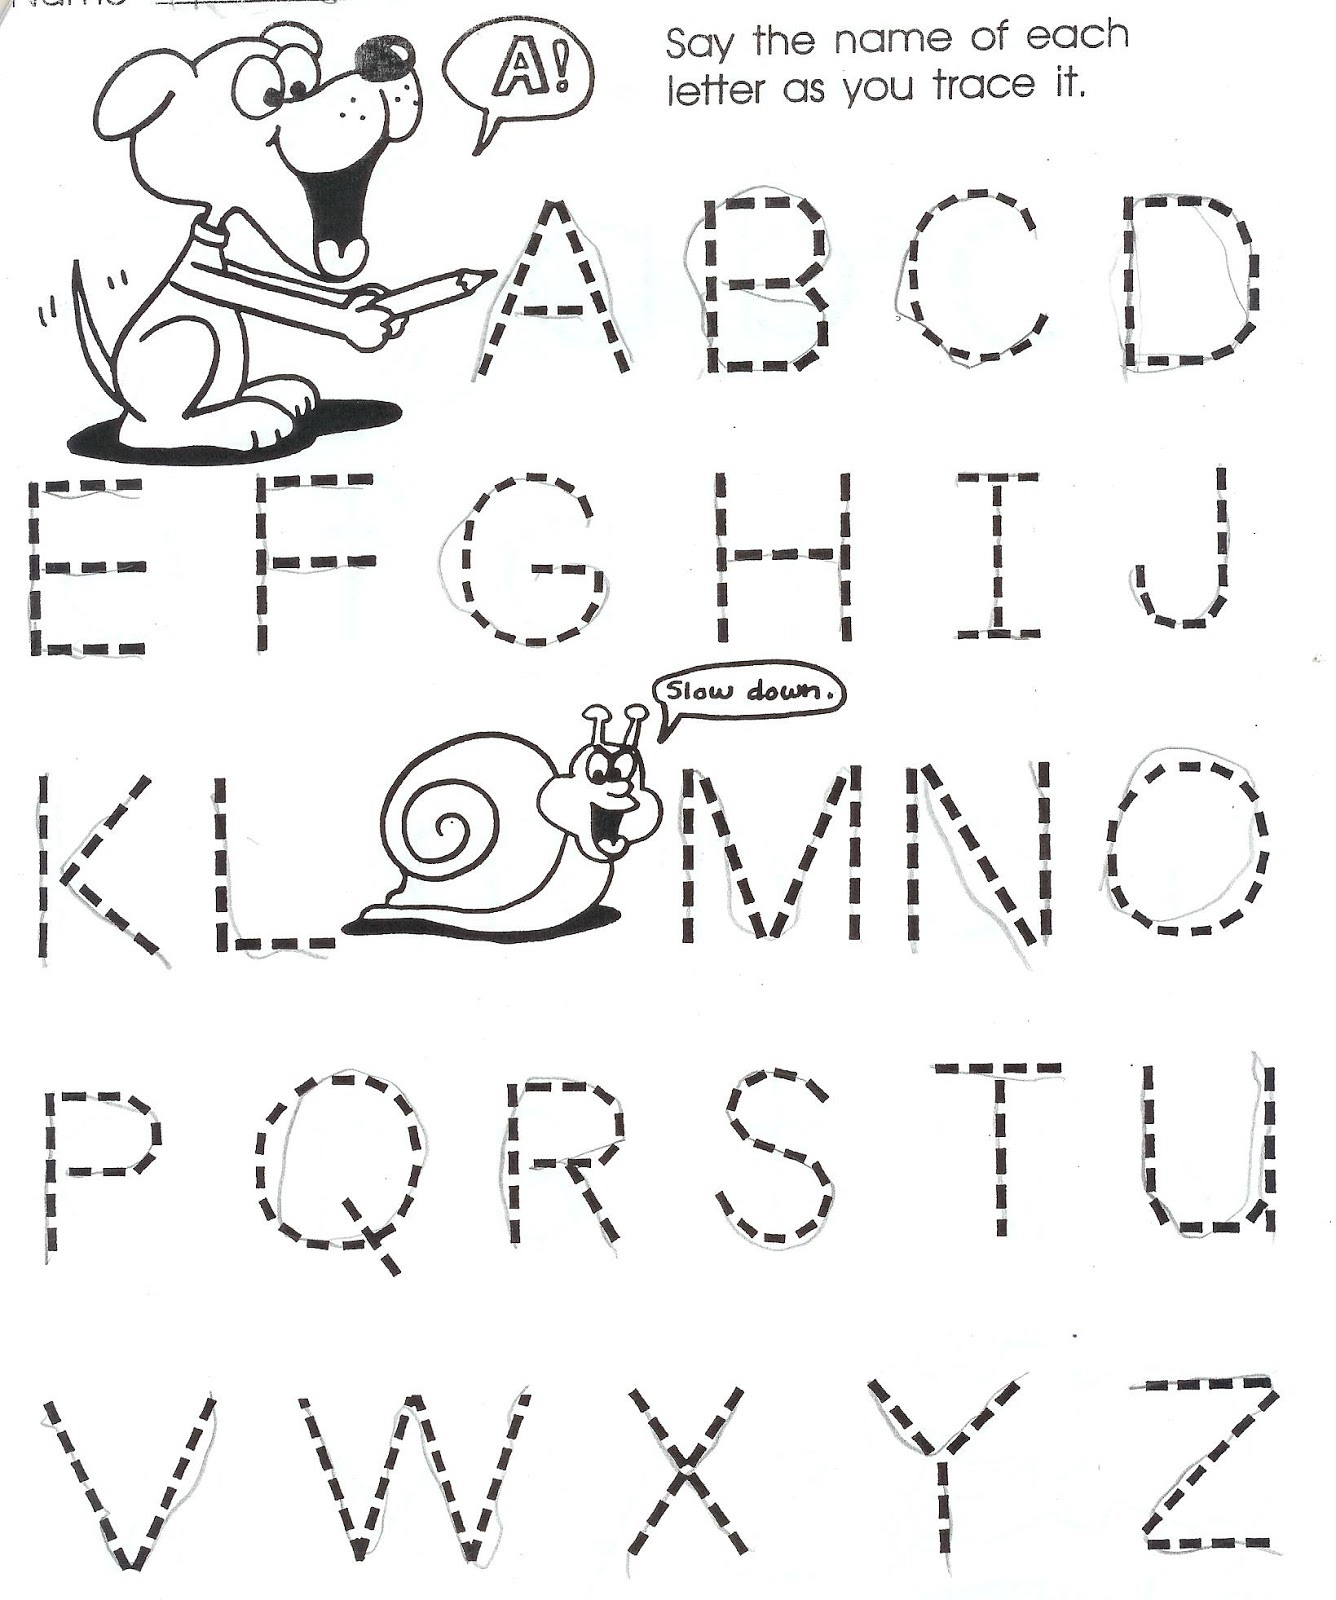 Year Old Worksheets Printable And Writing For Three Olds pertaining to Alphabet Tracing For 3 Year Olds